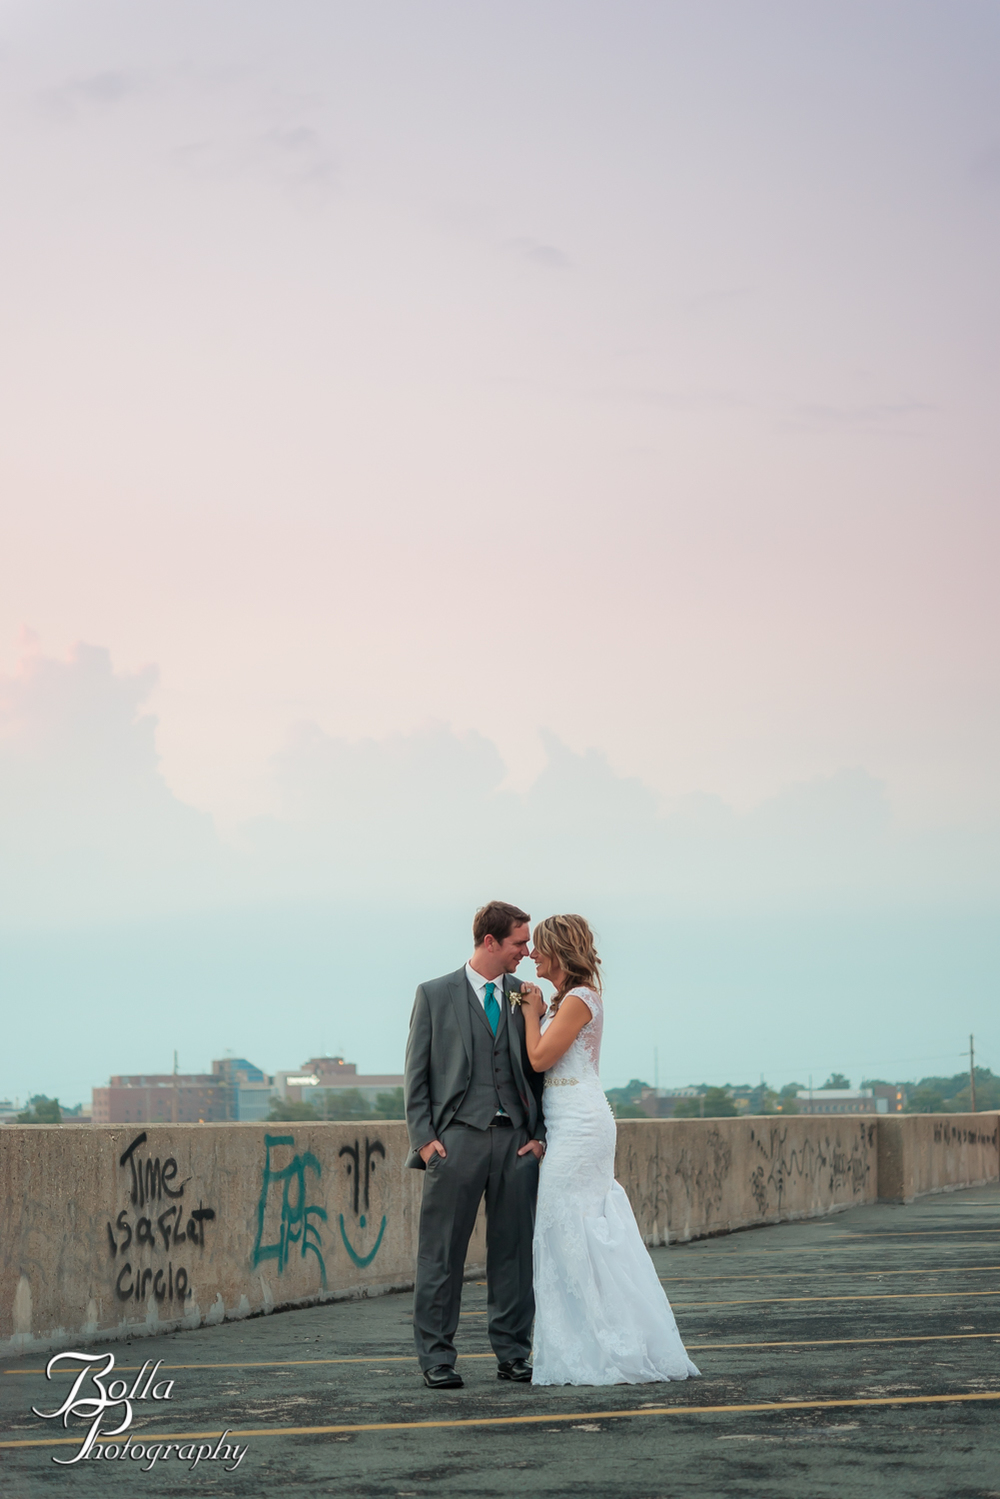 Bolla_Photography_St_Louis_wedding_photographer-0417.jpg